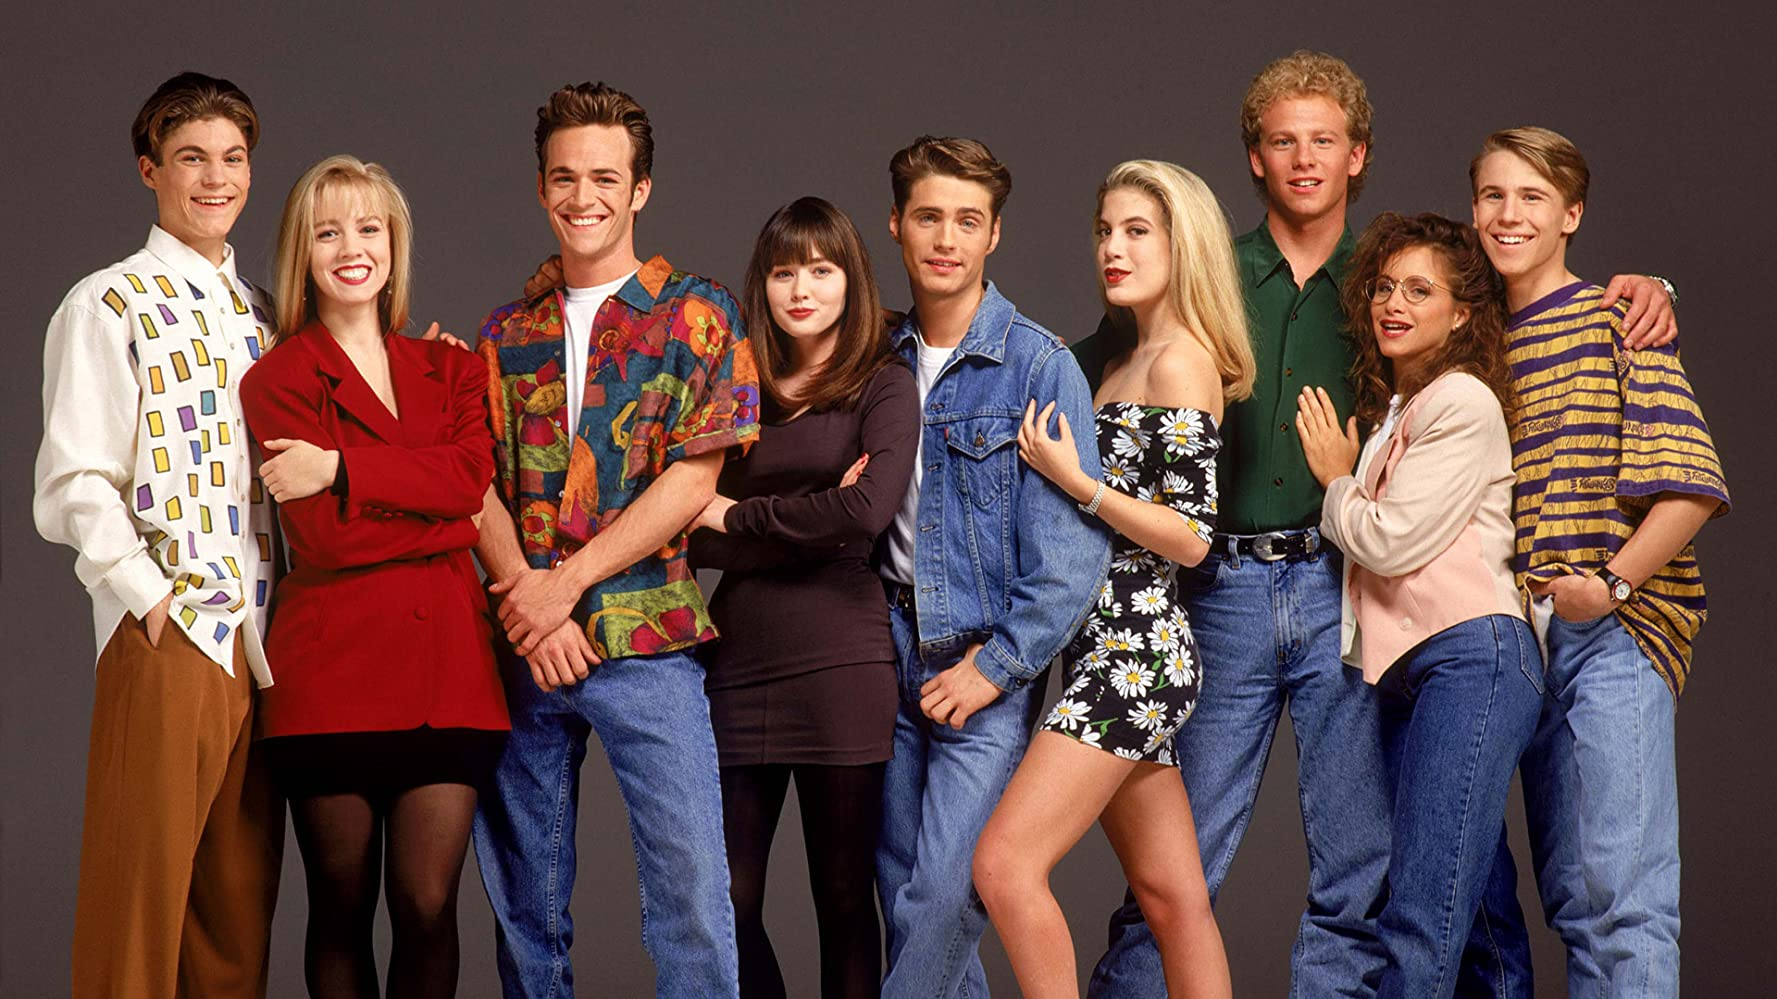 Luke Perry, Jason Priestley, Shannen Doherty, Jennie Garth, Tori Spelling, Brian Austin Green, Ian Ziering, Gabrielle Carteris, and Douglas Emerson in Beverly Hills, 90210 (1990)